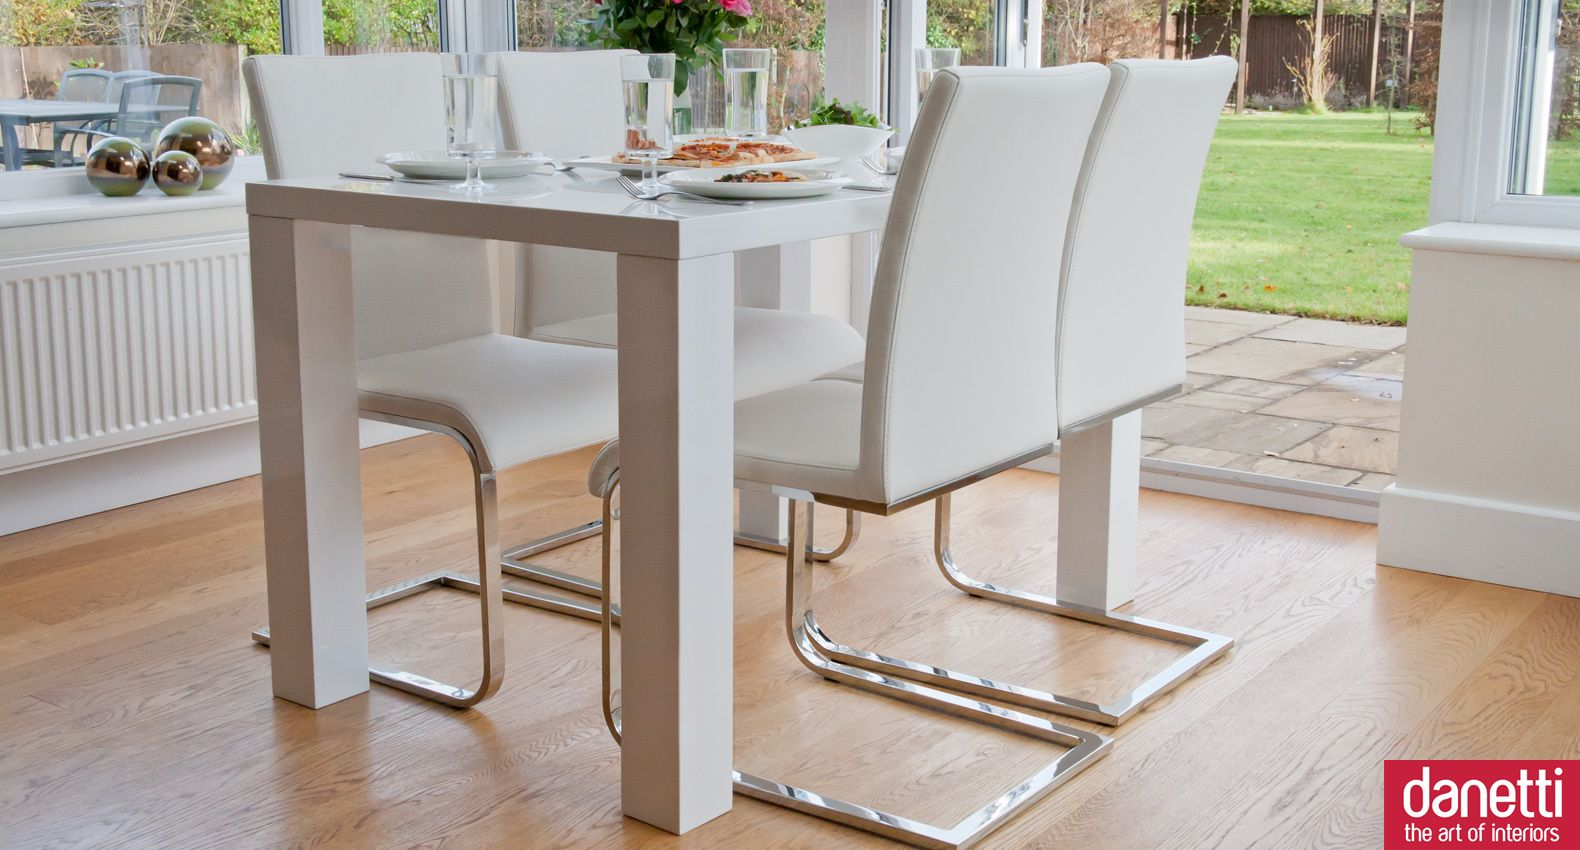 the fern 4 seater white gloss dining table is a fabulous medium